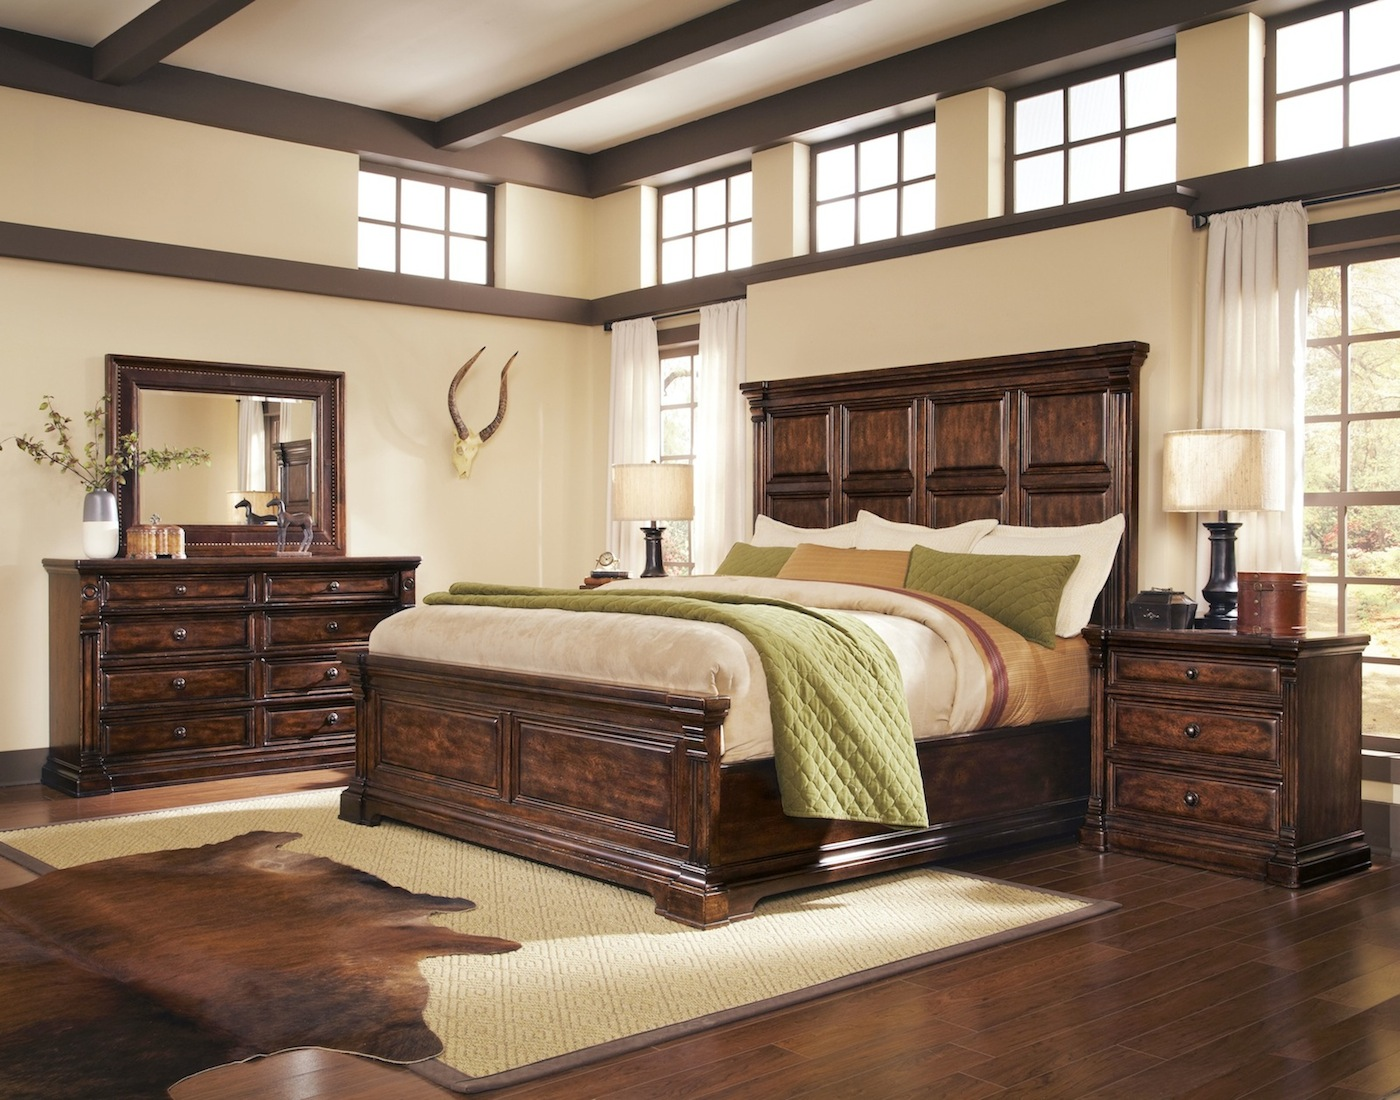 Whiskey oak rustic inspired wooden panel bedroom set 205000 for Bedroom furnishings